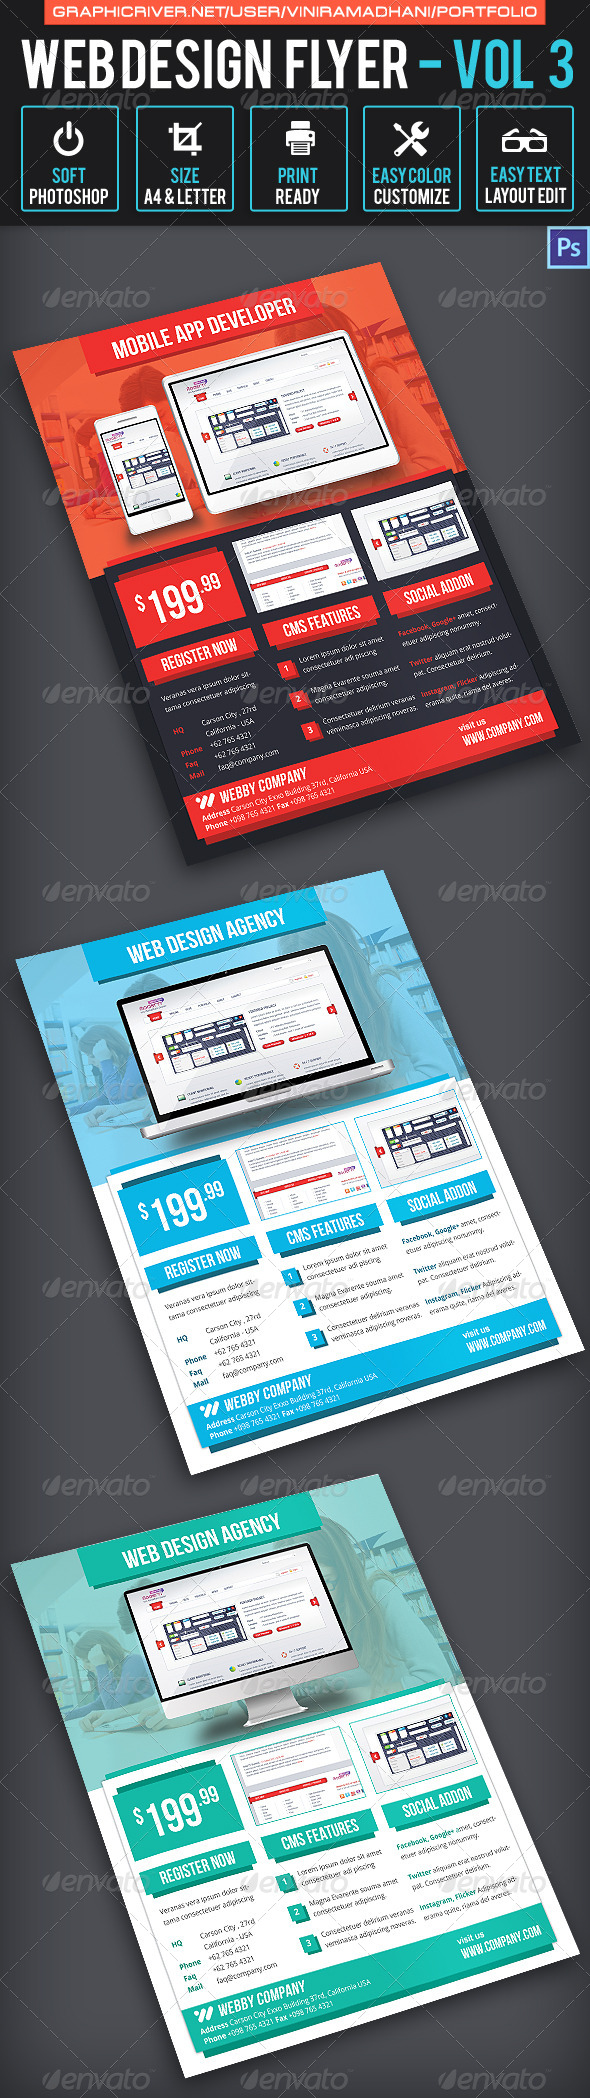 GraphicRiver Web Design Flyer Volume 3 6757156